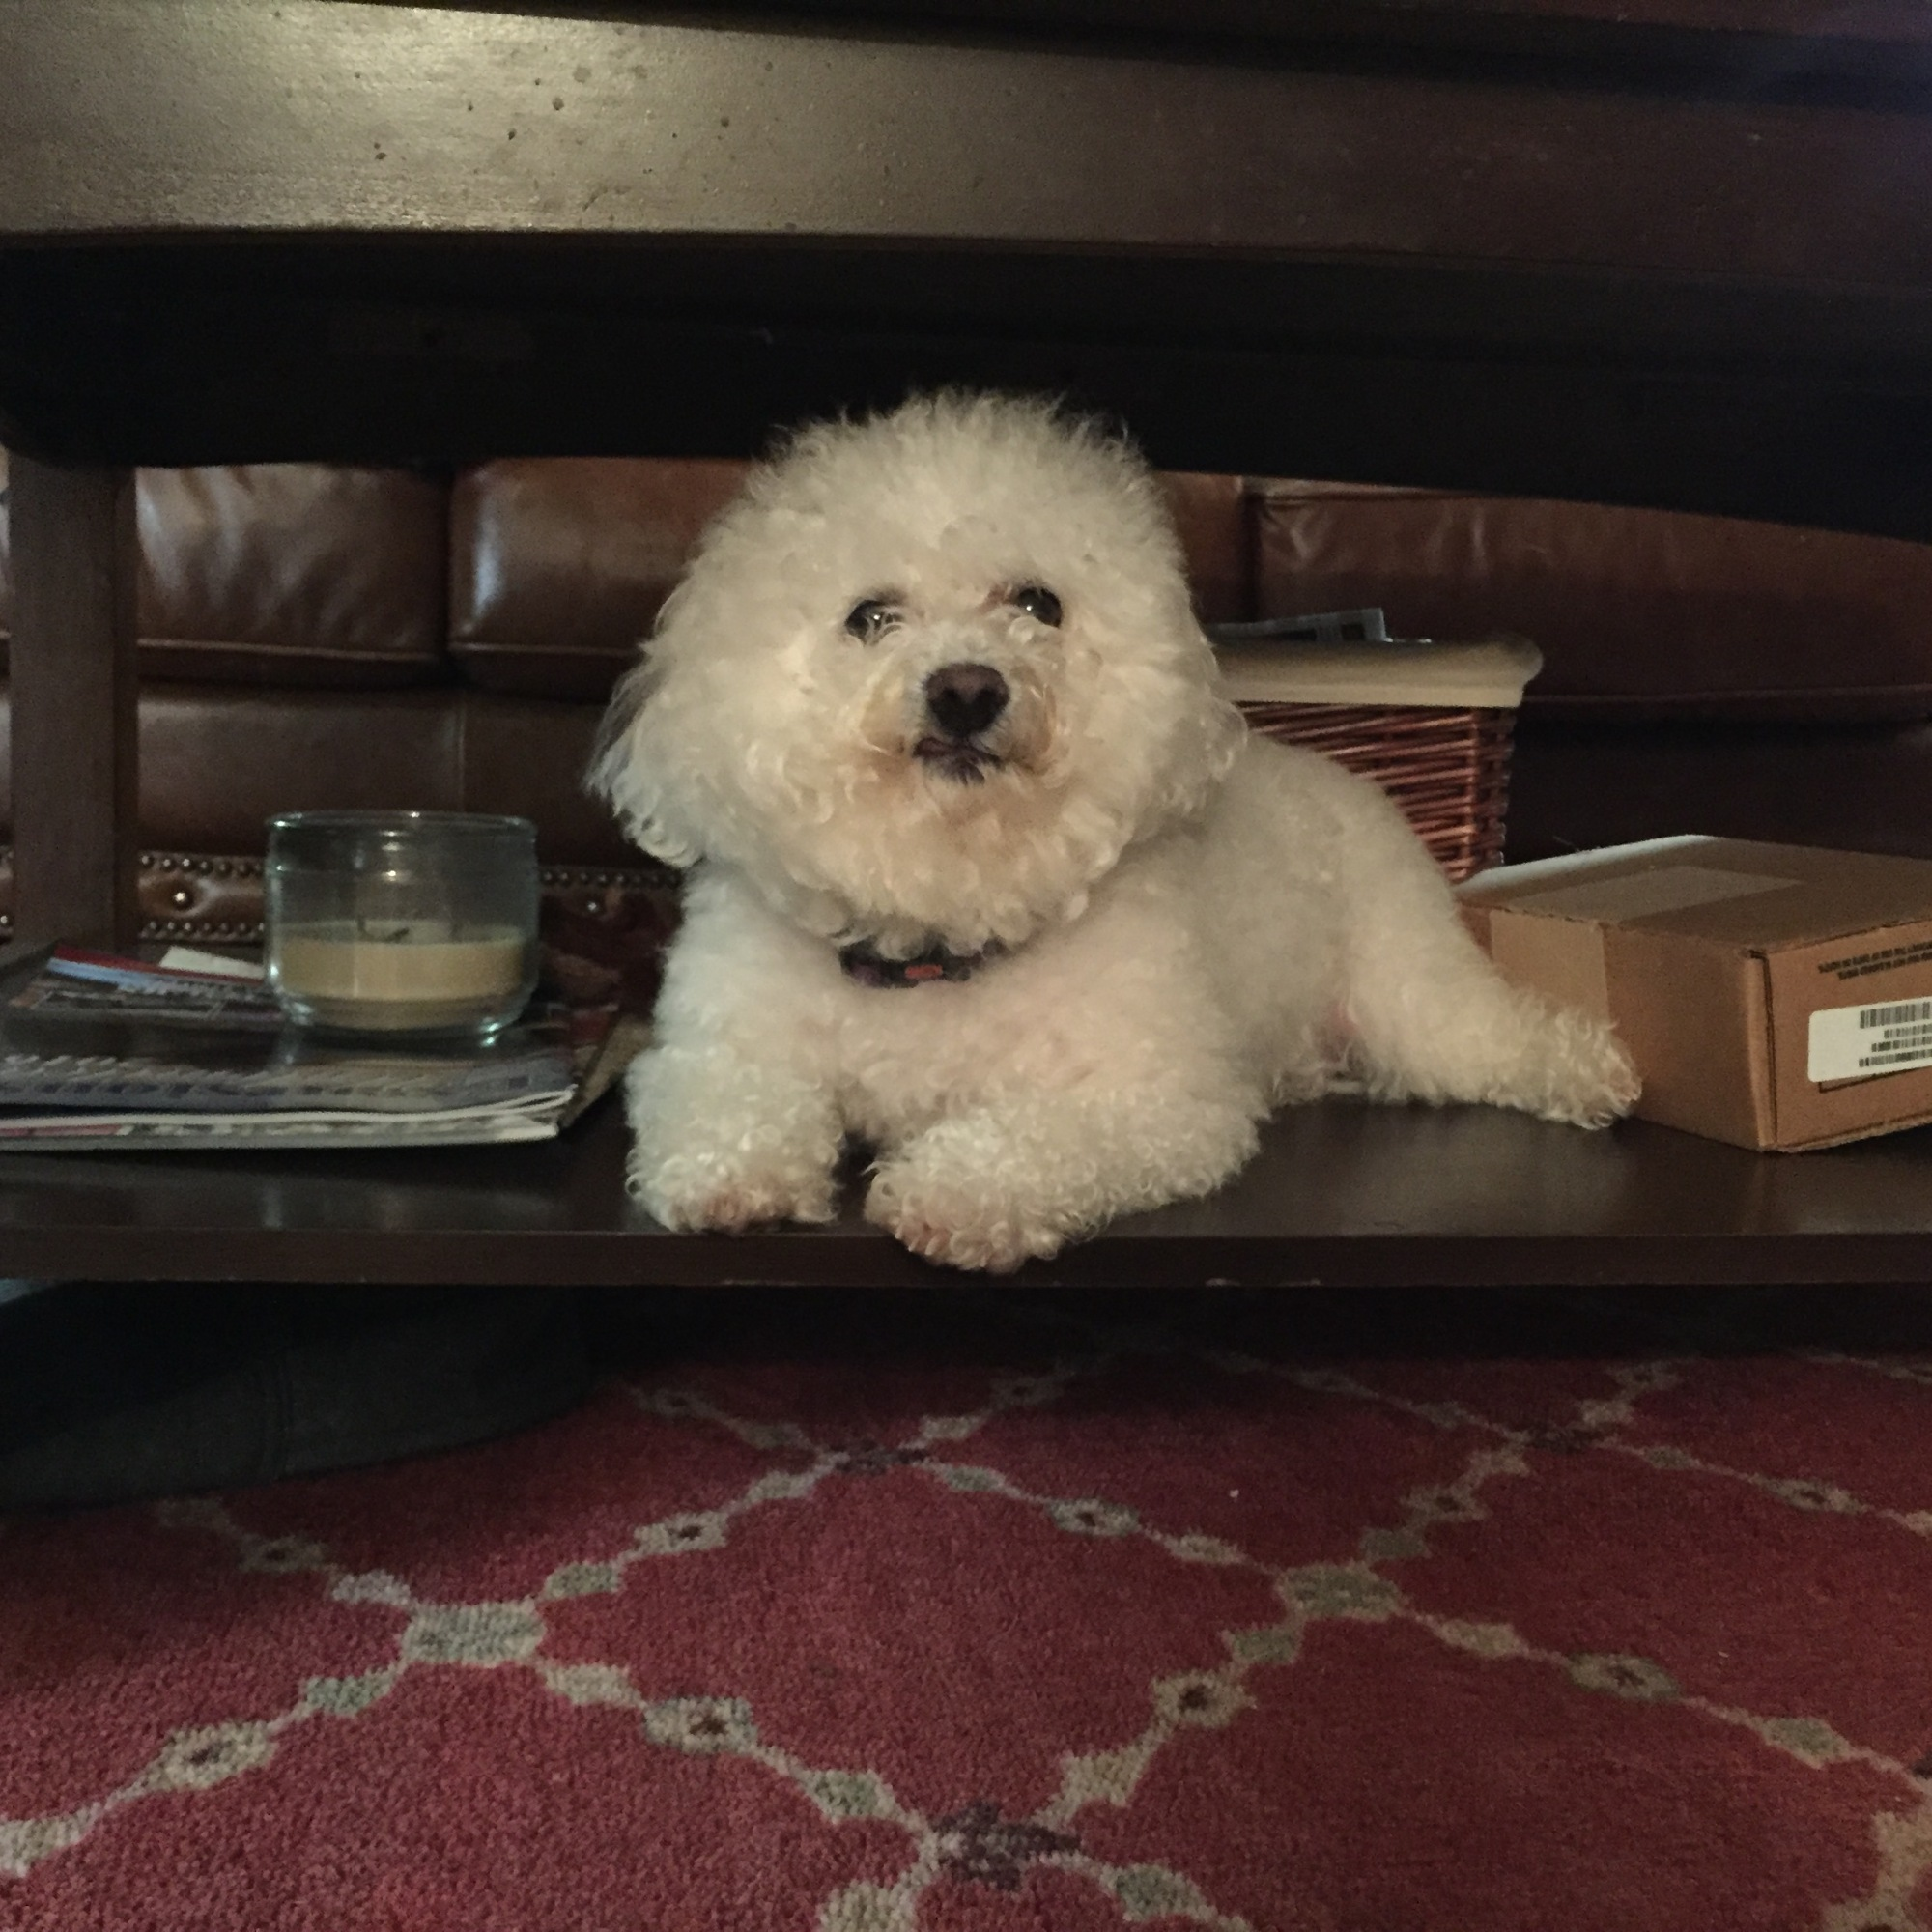 Lacy, our little bichon frise